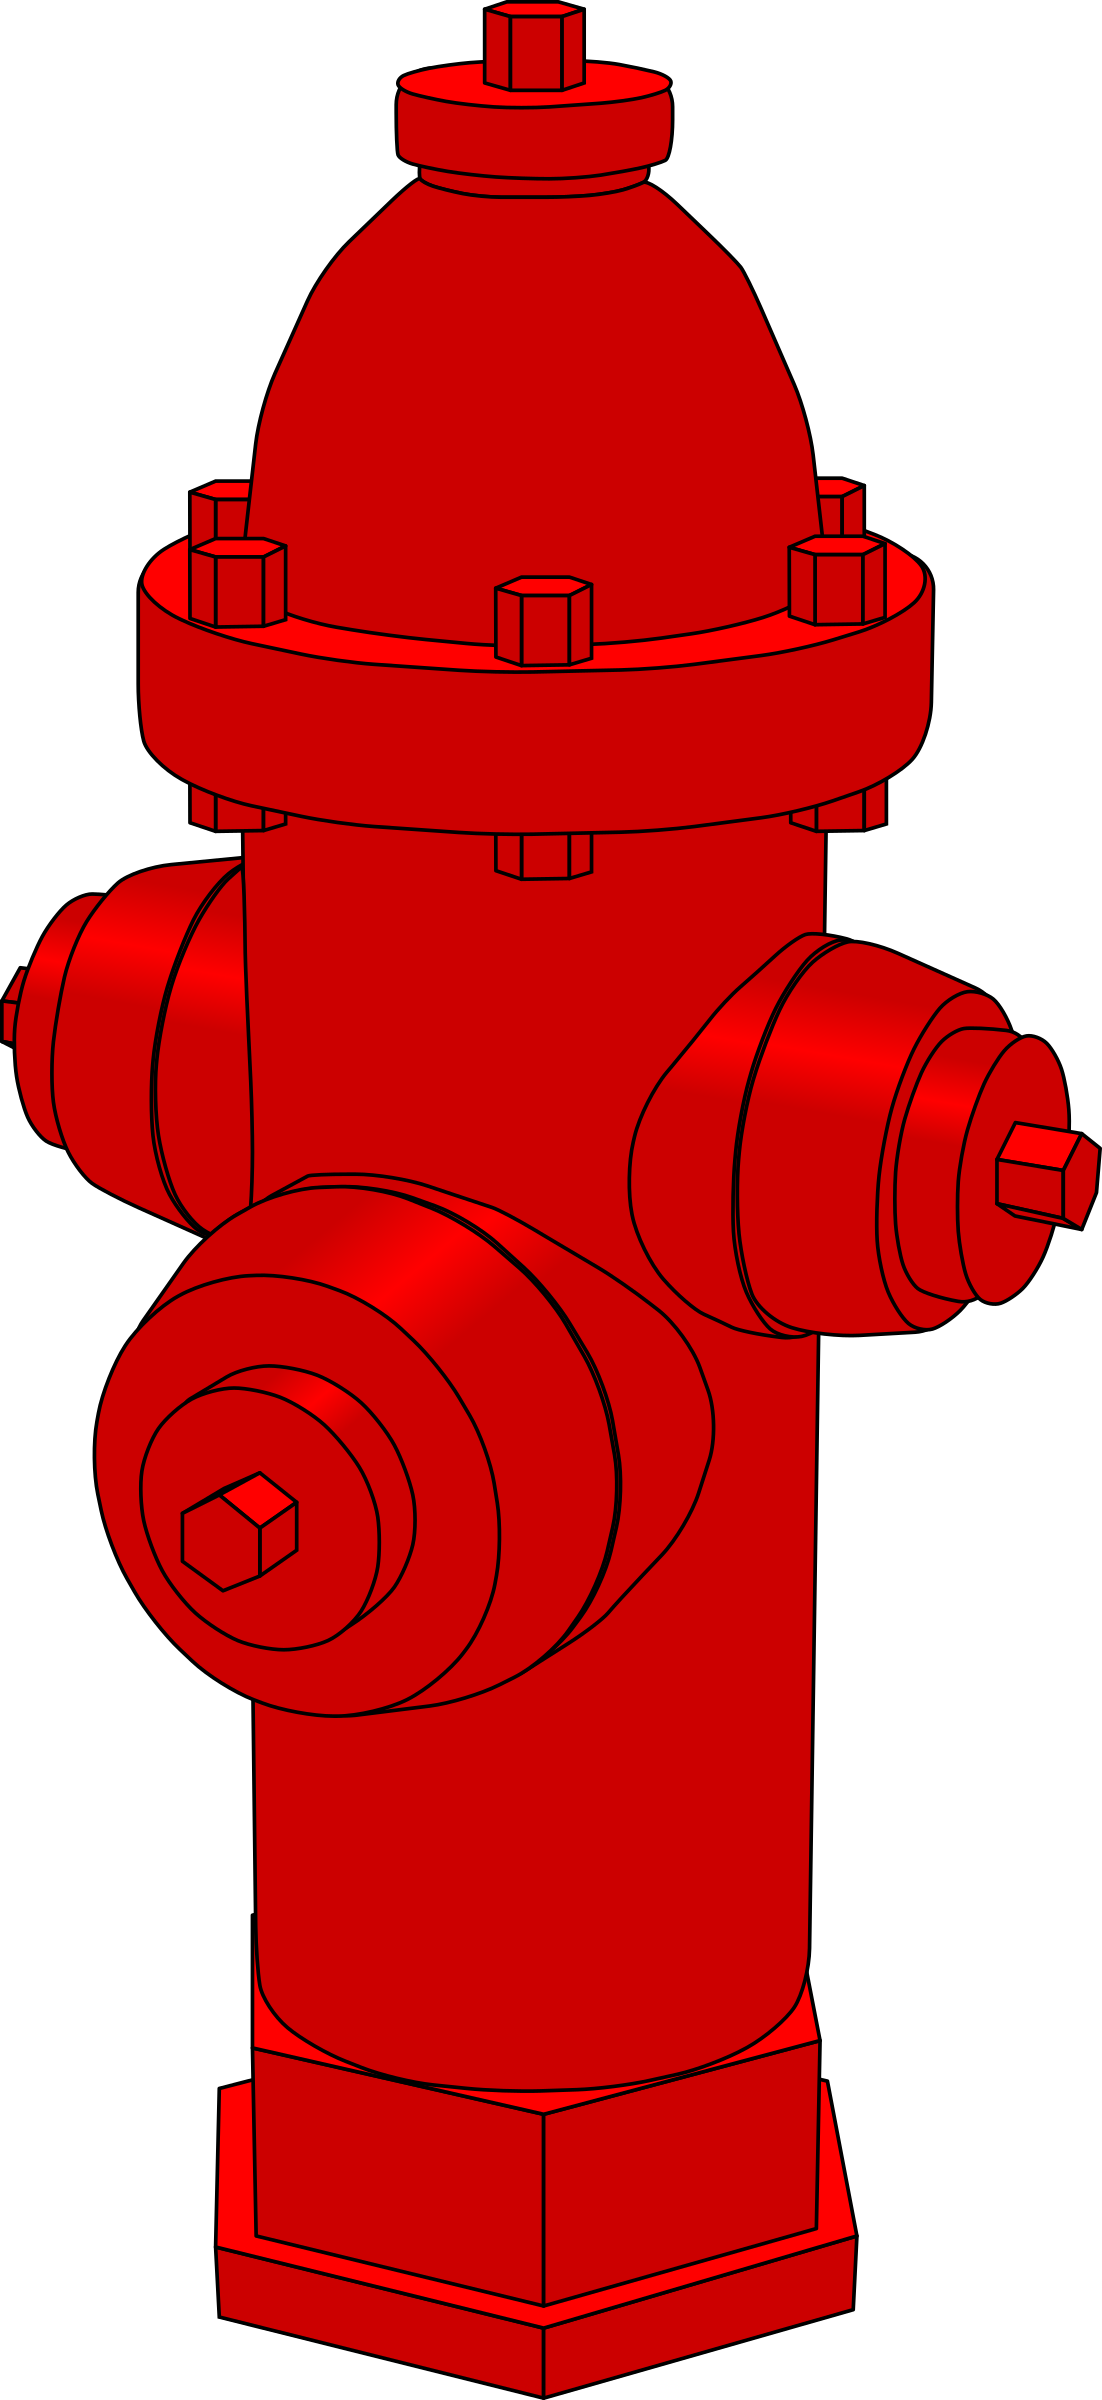 Fire hydrant by gramzon